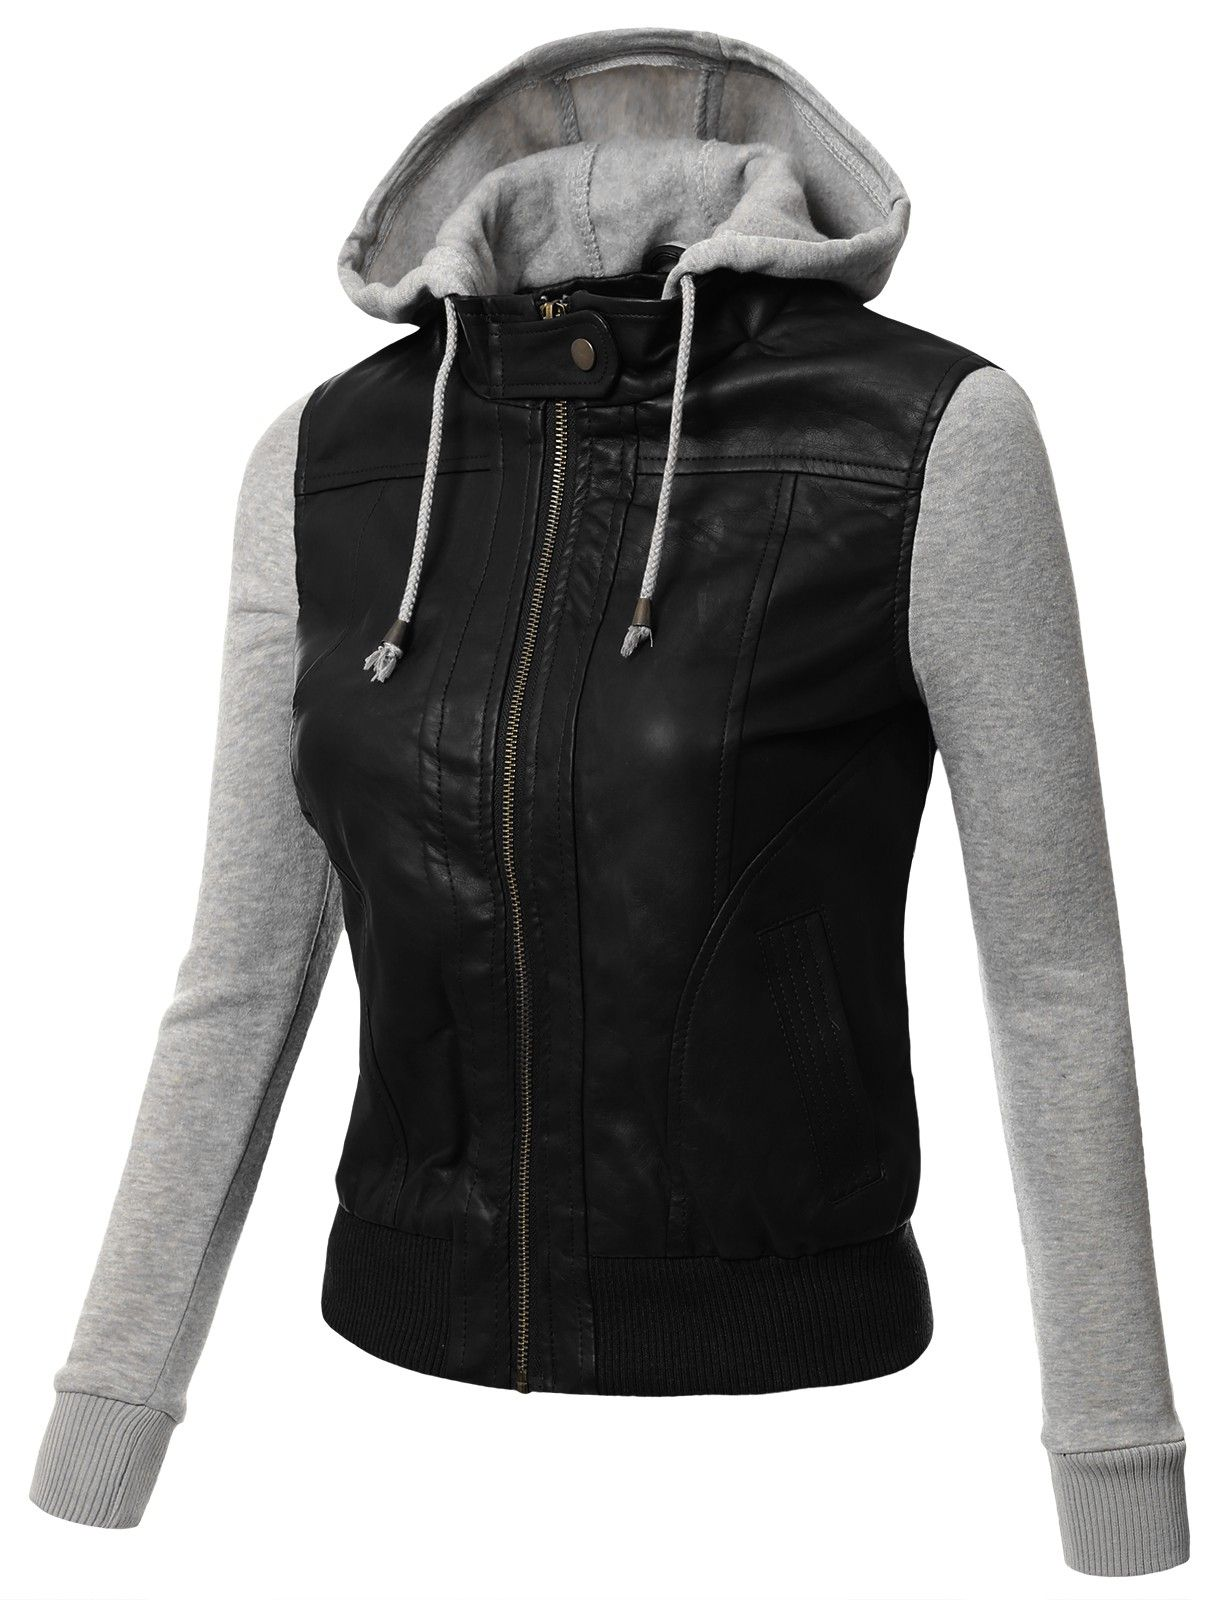 Womens Faux Leather Hooded Moto Jacket With Pockets